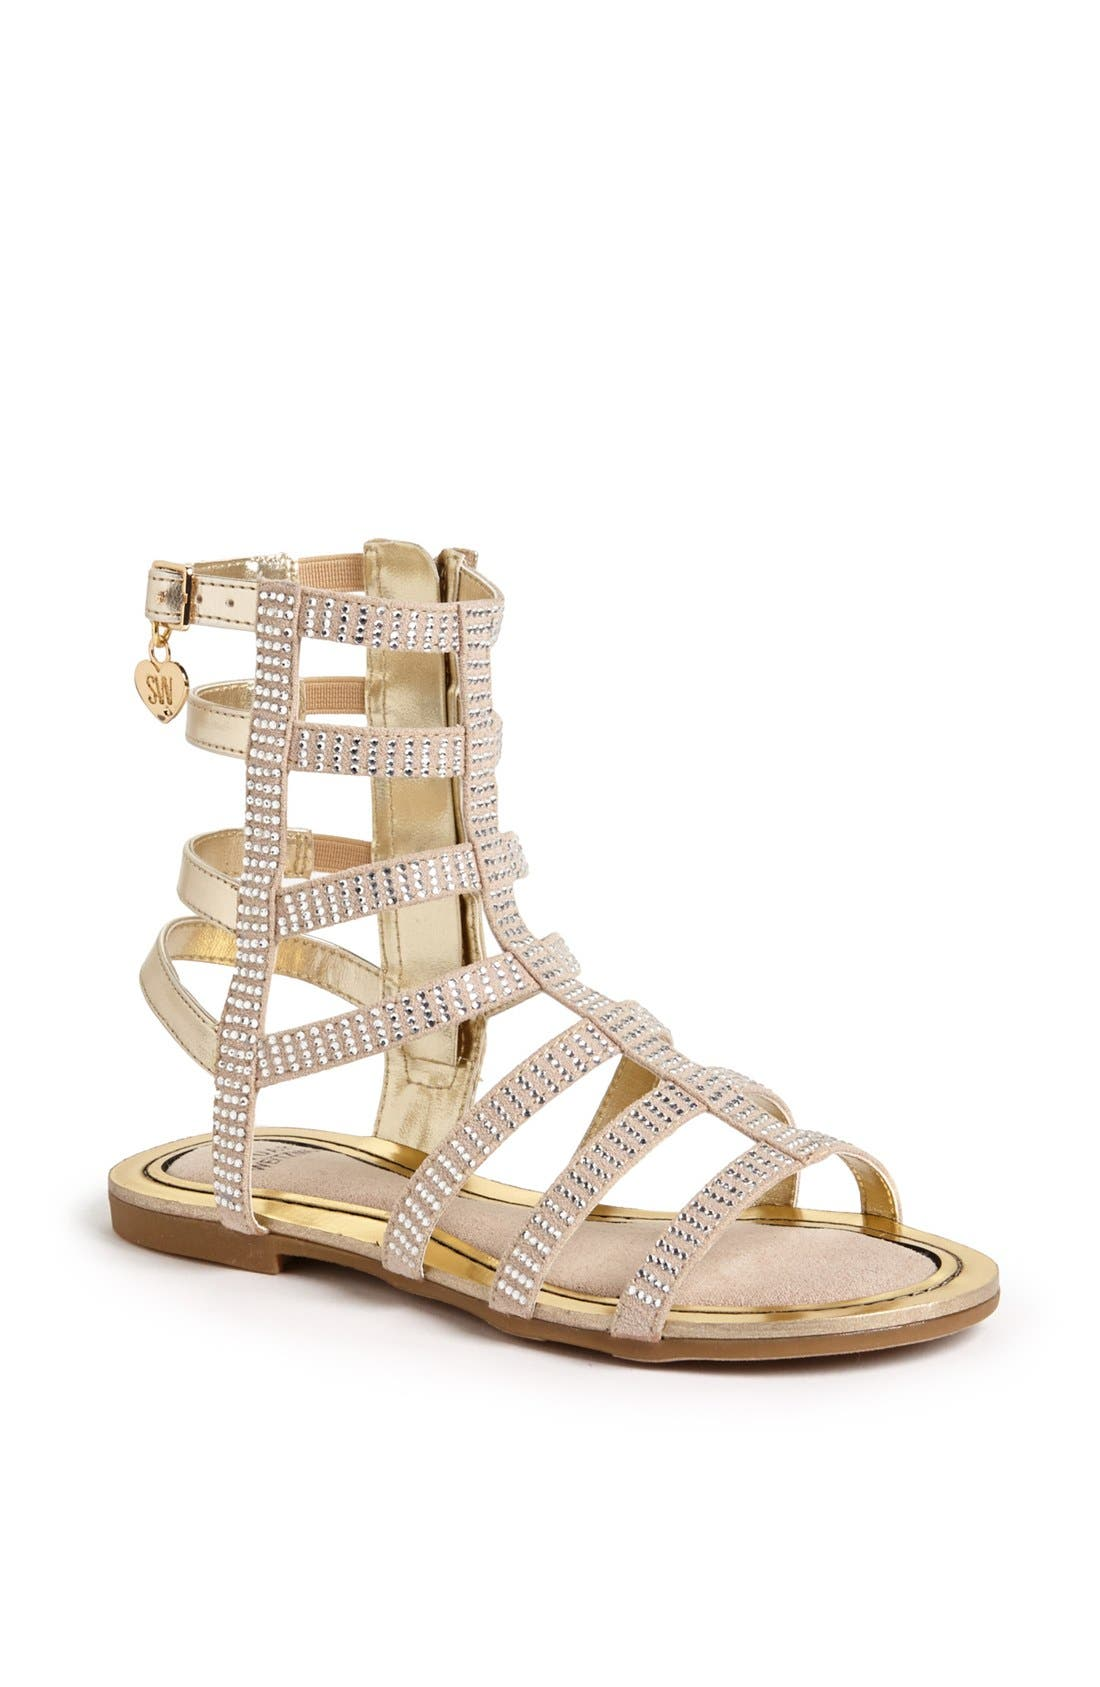 Alternate Image 1 Selected - Stuart Weitzman 'Camia' Gladiator Sandal (Little Kid & Big Kid)